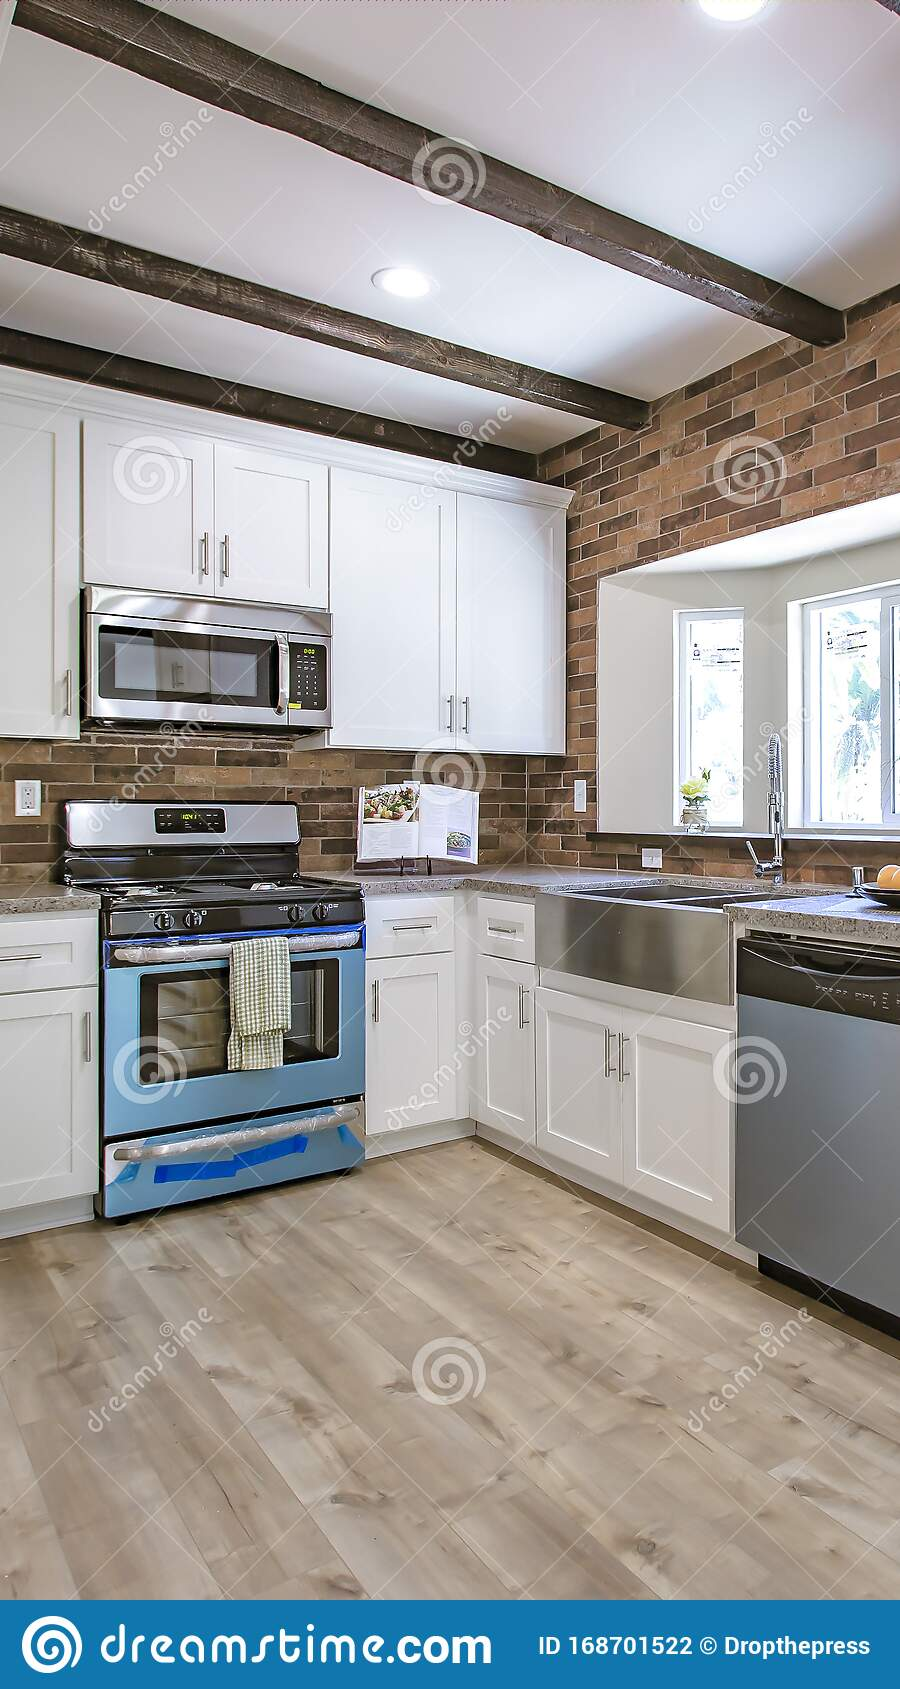 - Vertical Kitchen With Brick Backsplash And Counter Spcae Stock